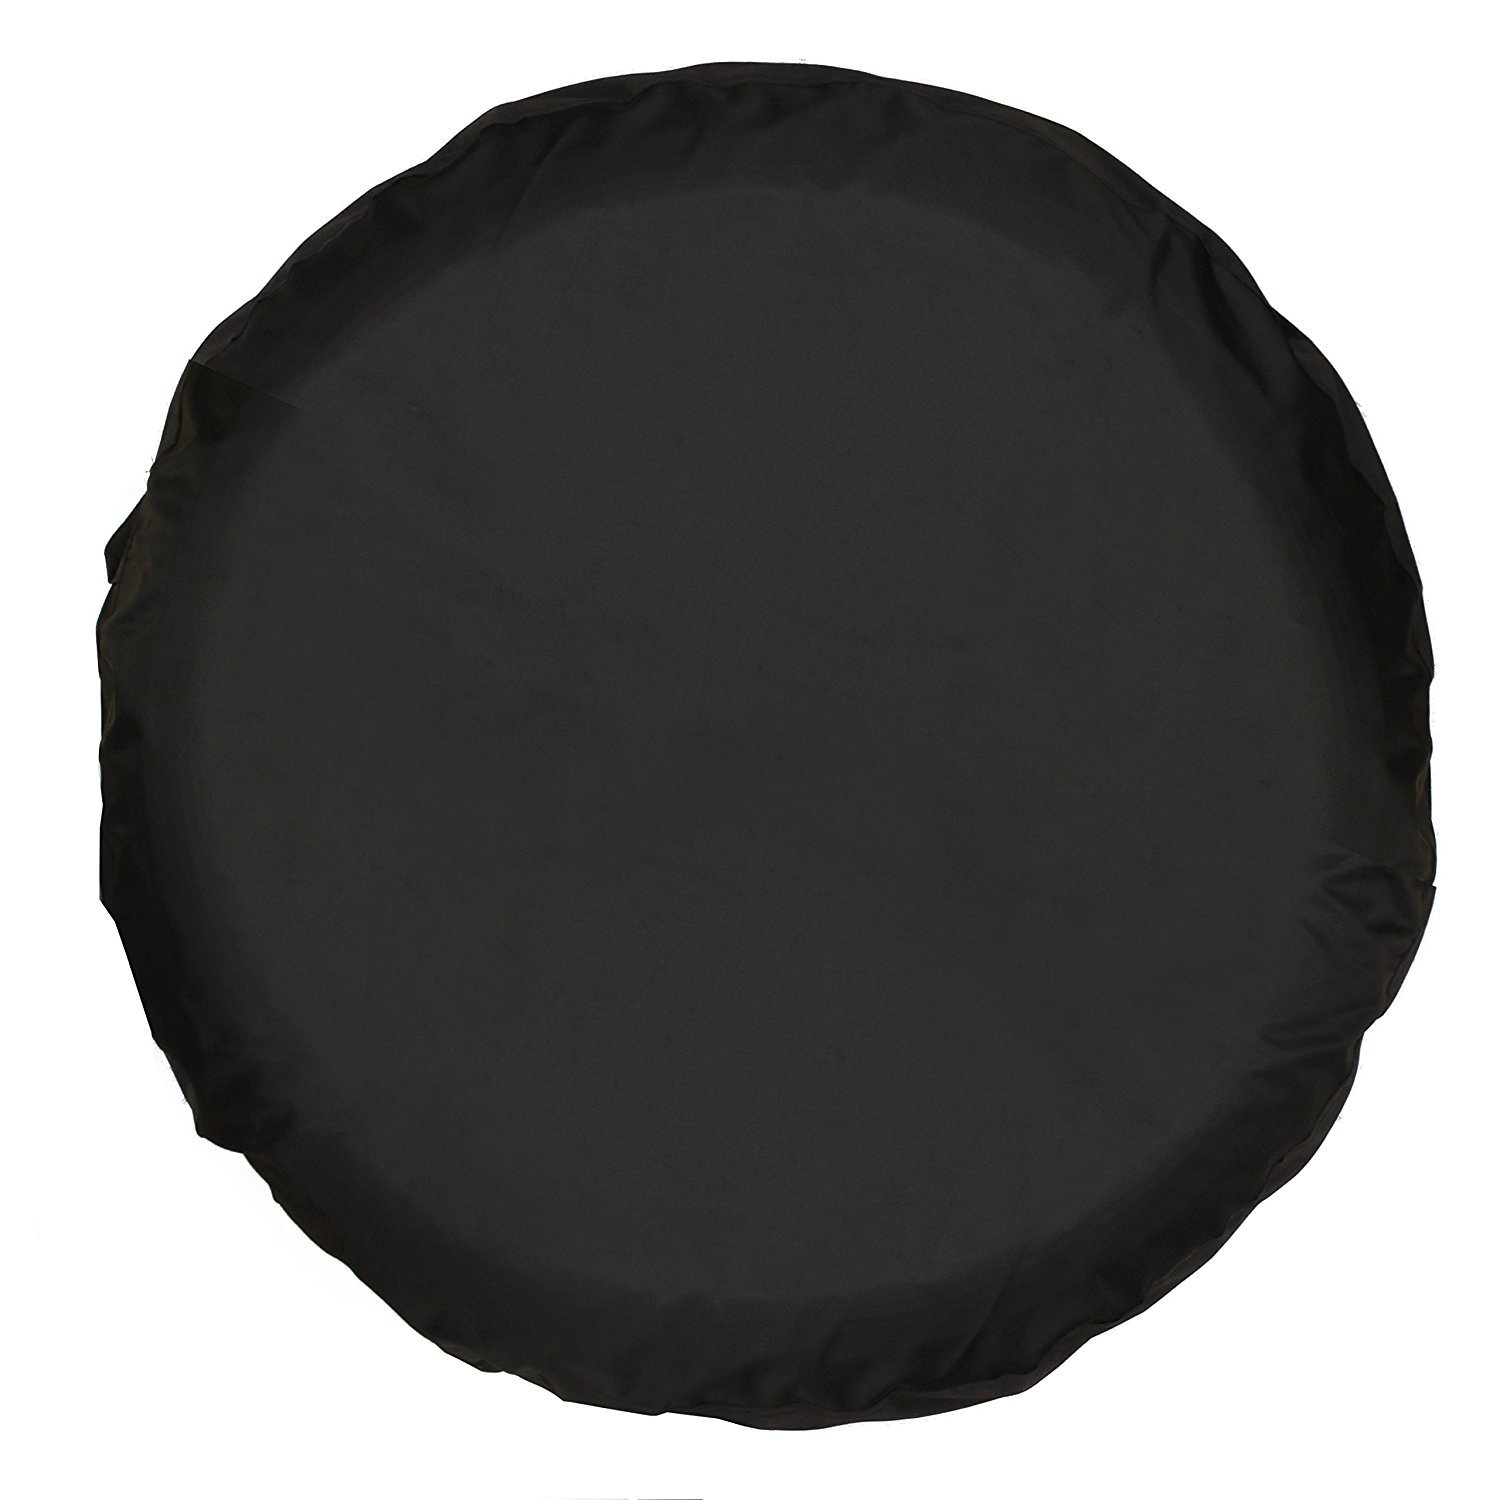 Universal Spare Tire Cover Black (16 inch) by Moonet (Image #1)